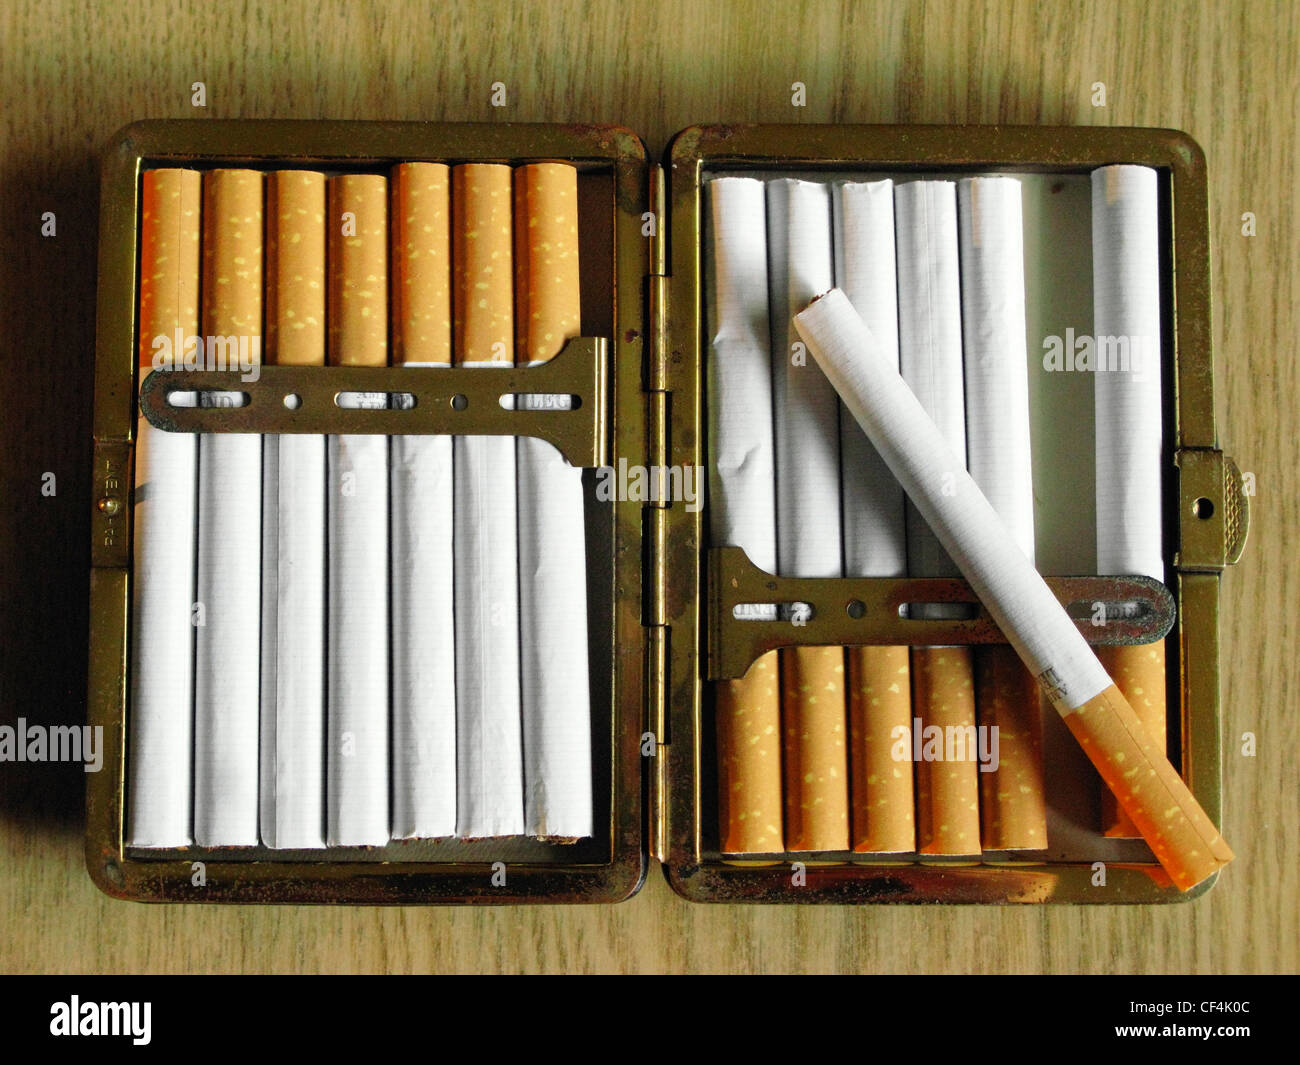 Buy Viceroy cigarettes for cheap